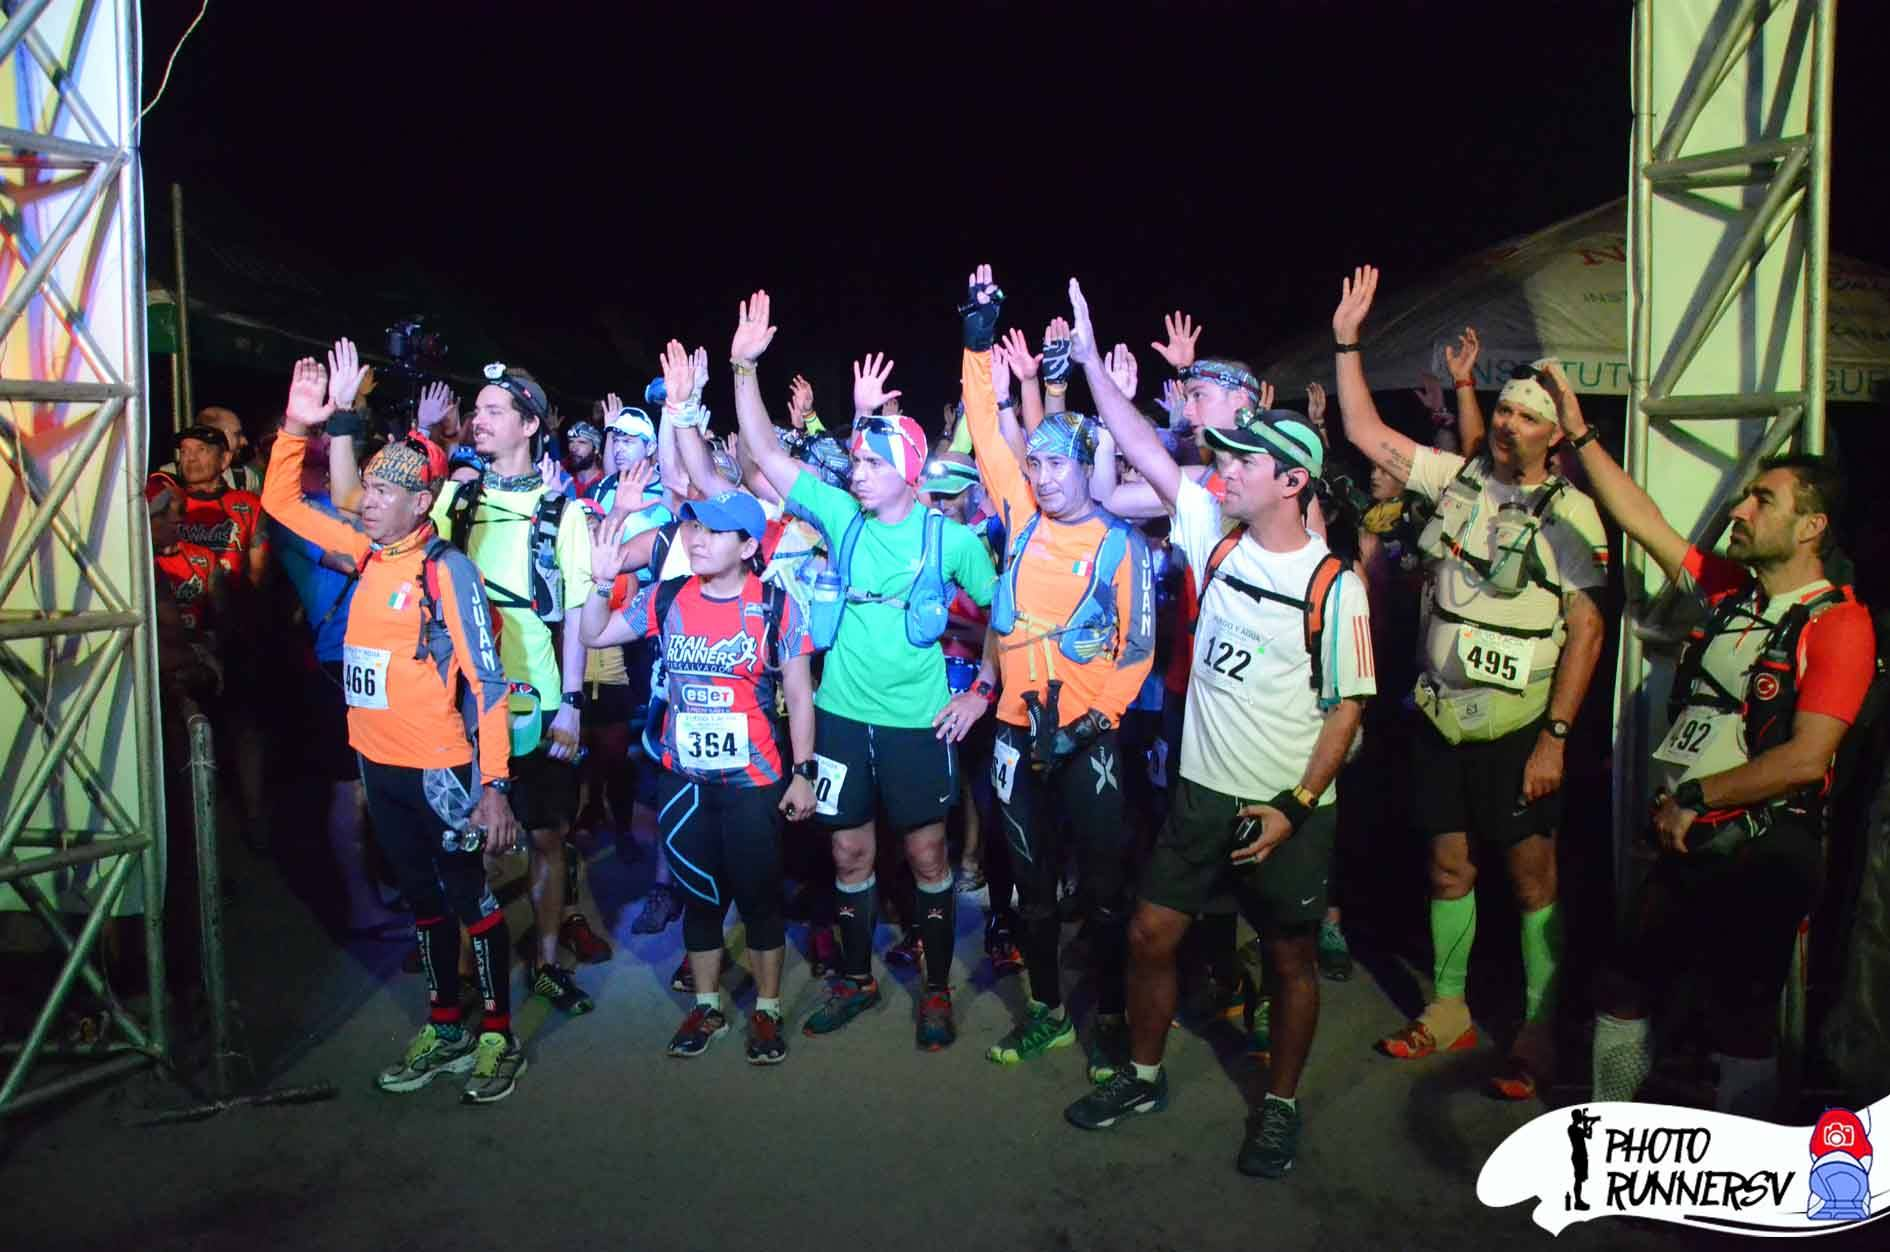 """""""If I get hurt, lost or die, it is my own damn fault"""" - taking the Caballo Blanco oath before the 50k/100k start  Photo by Photo Runners SV"""